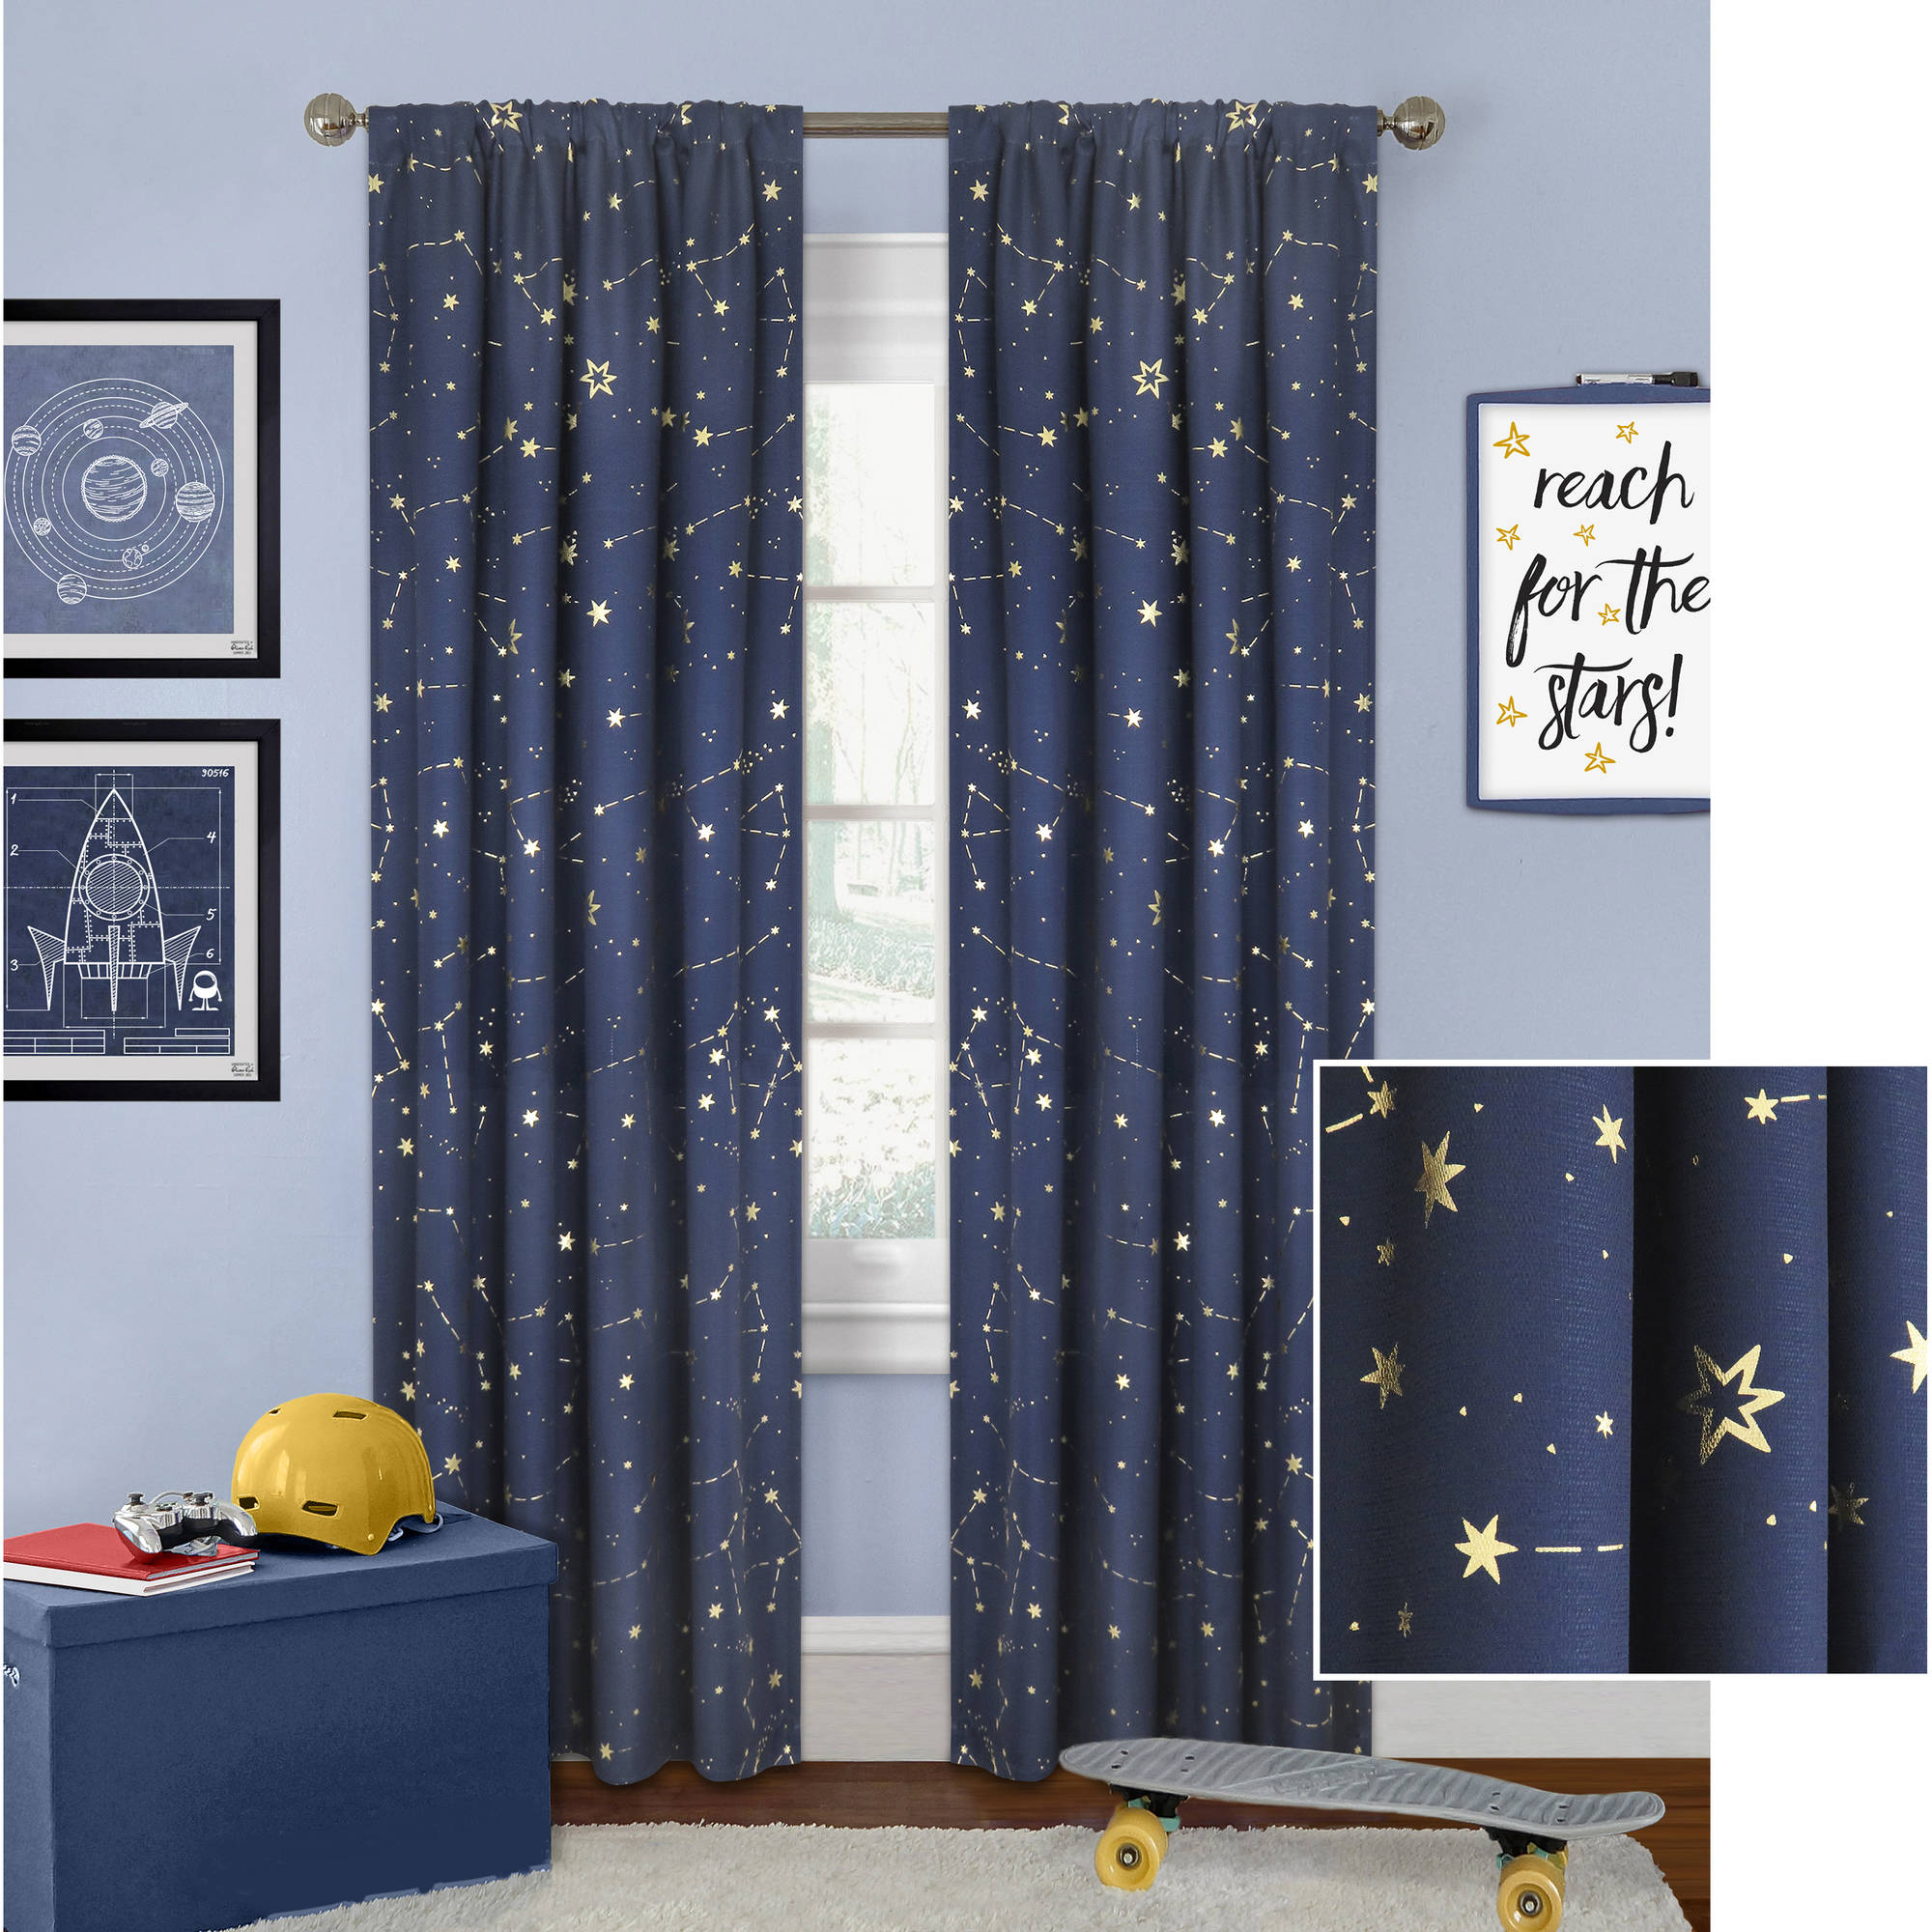 Better Homes and Gardens Night Sky Gold Metallic Curtain Panel